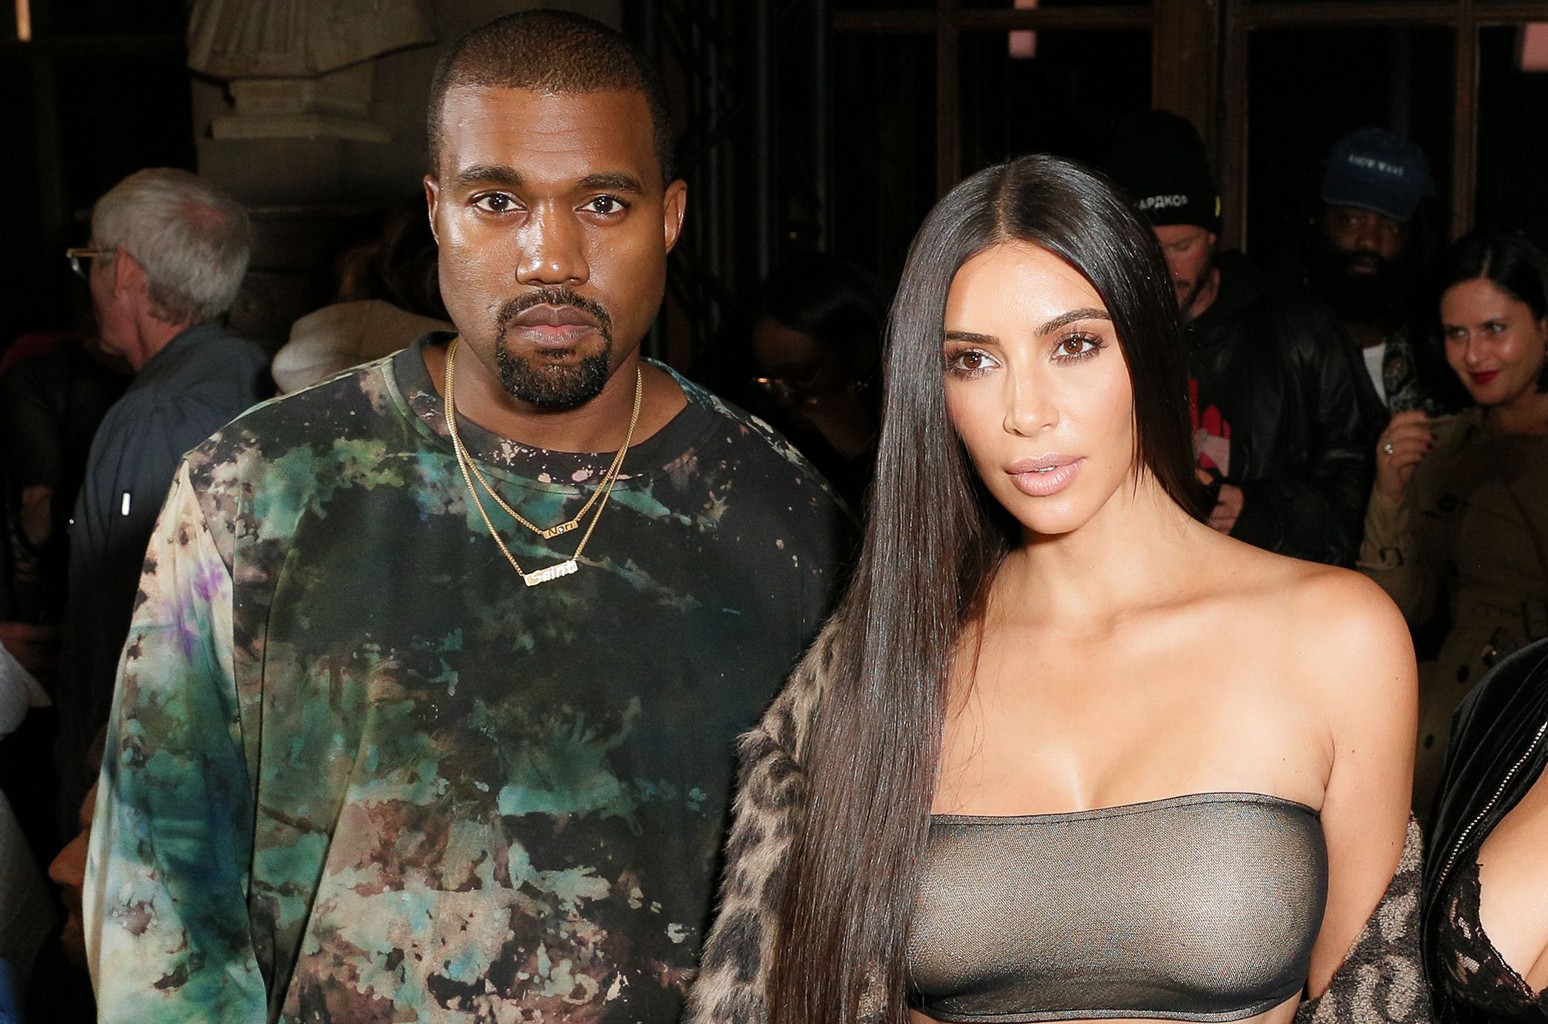 Kanye West and Kim Kardashian at Virgil Abloh's Off-White show